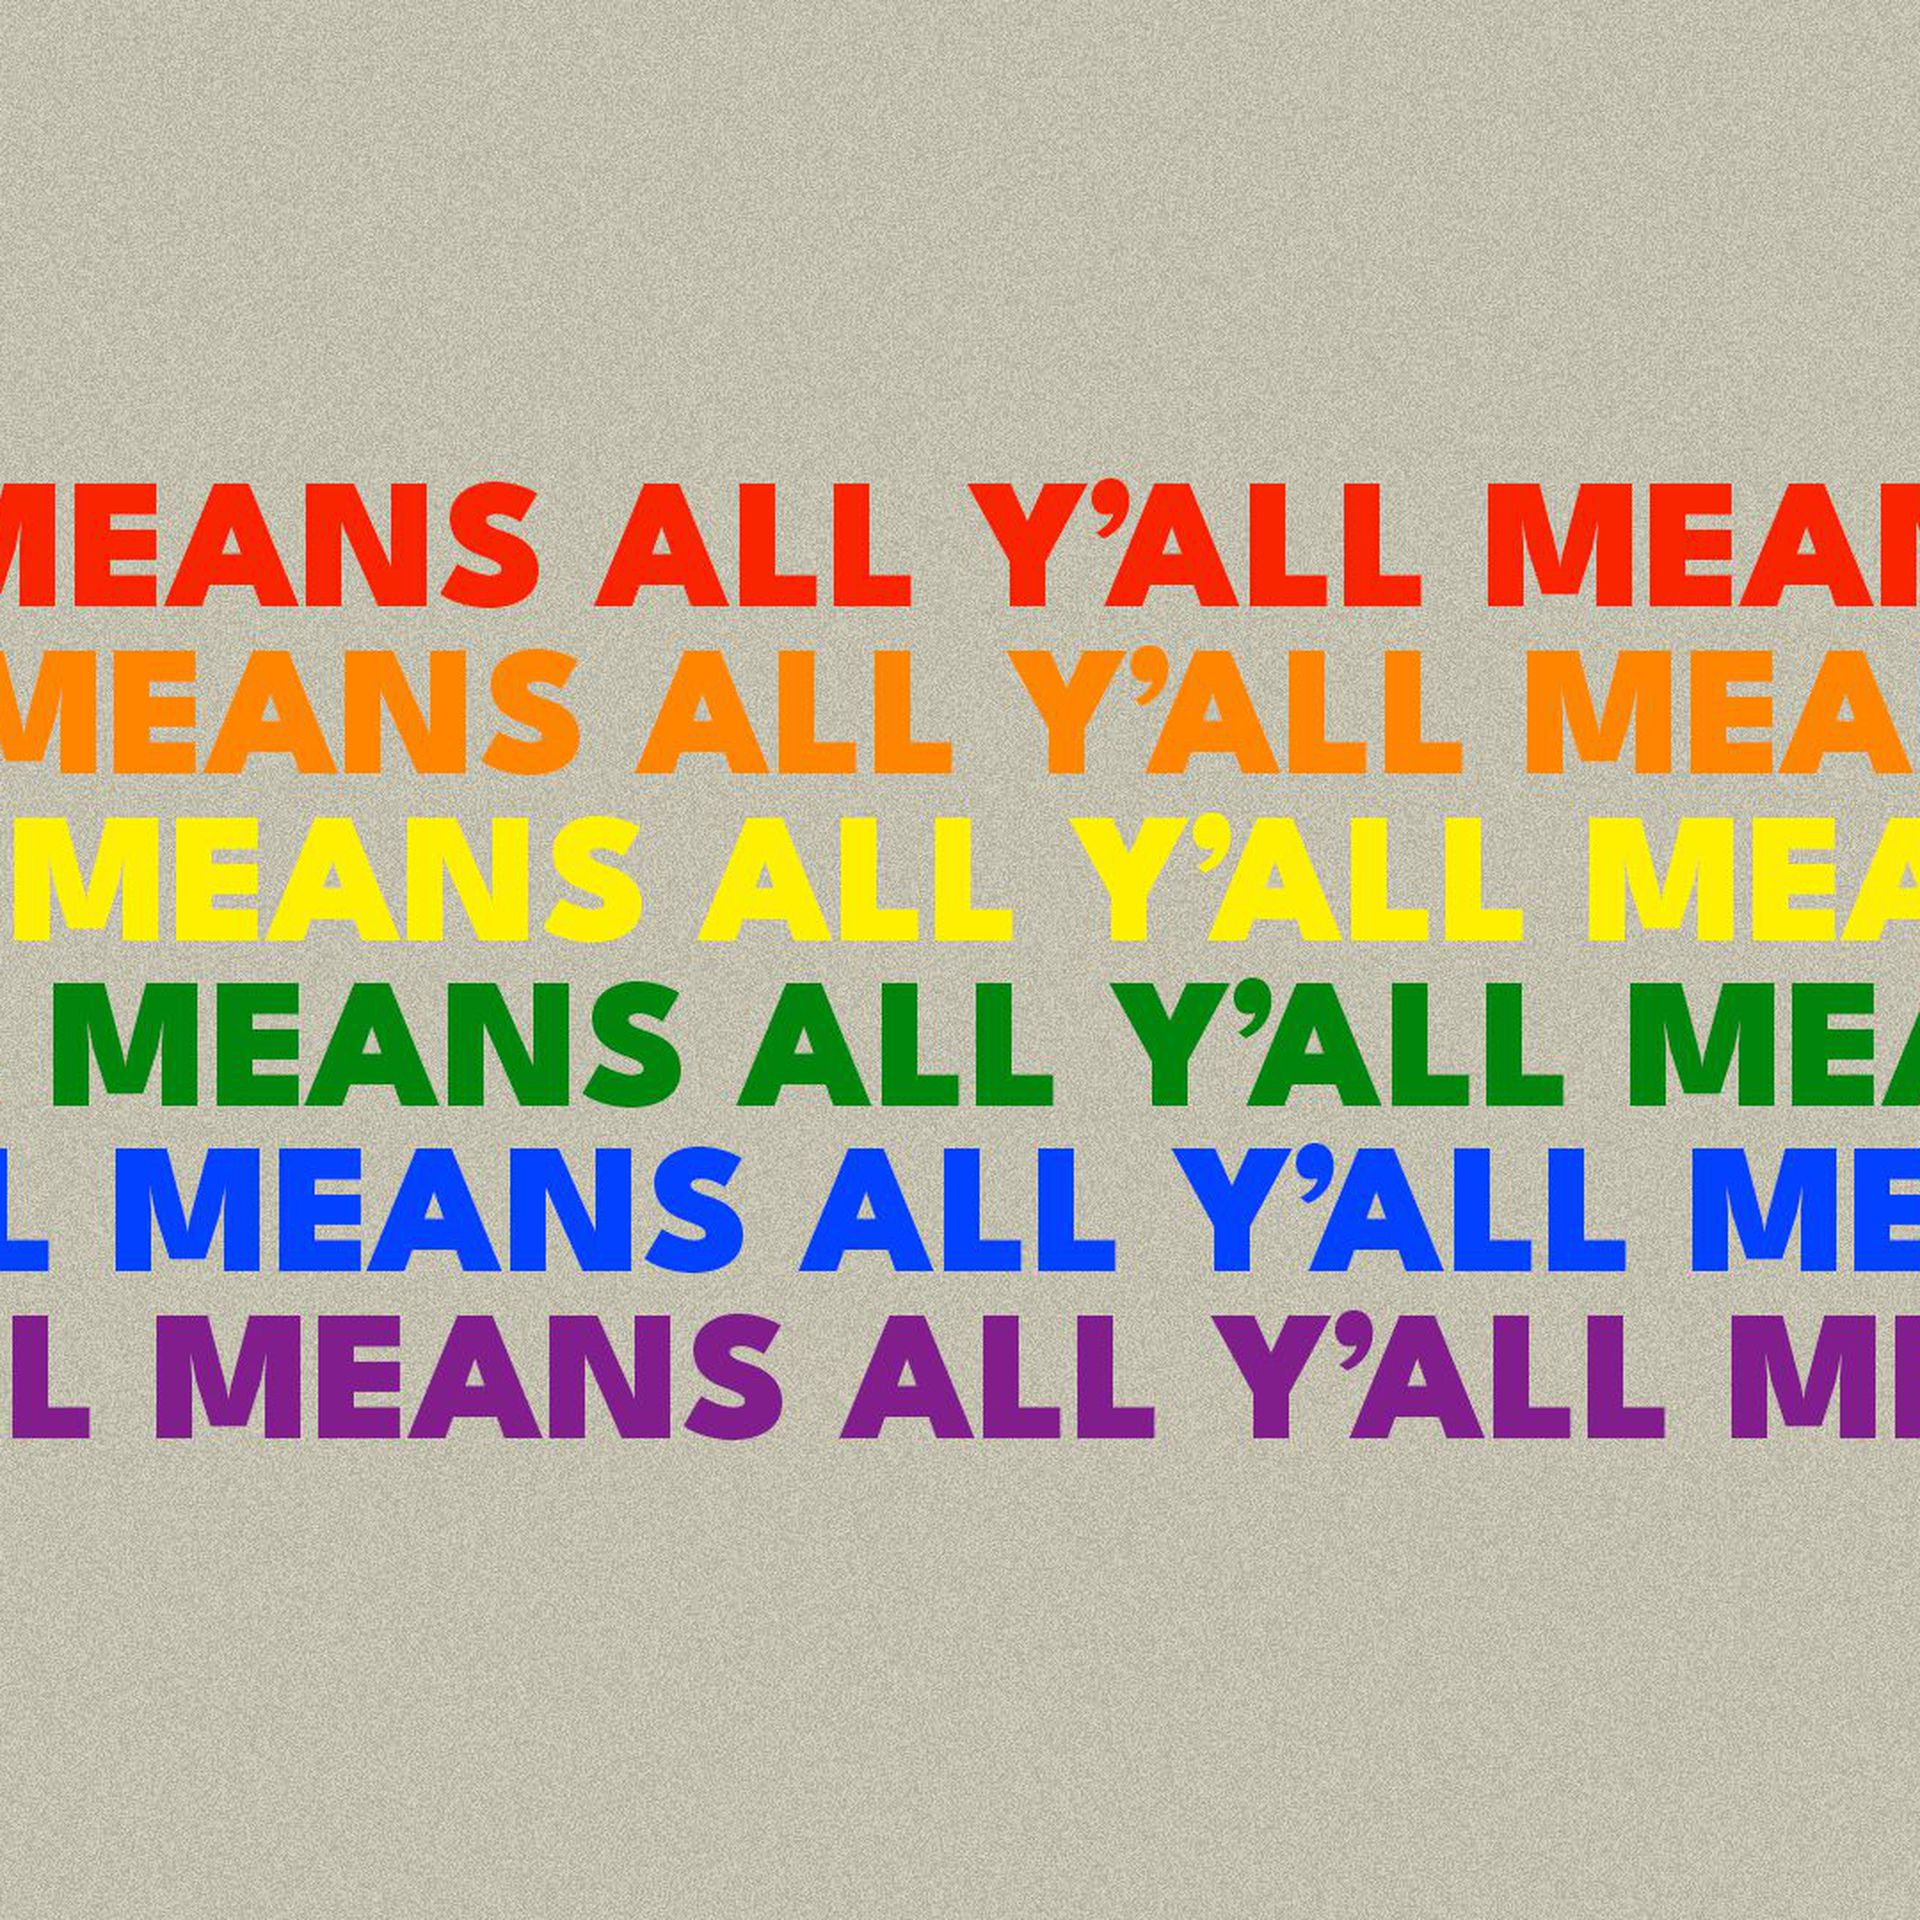 """Illustration of the words """"Y'all means all"""" repeated to form an LGBTQ Pride flag."""